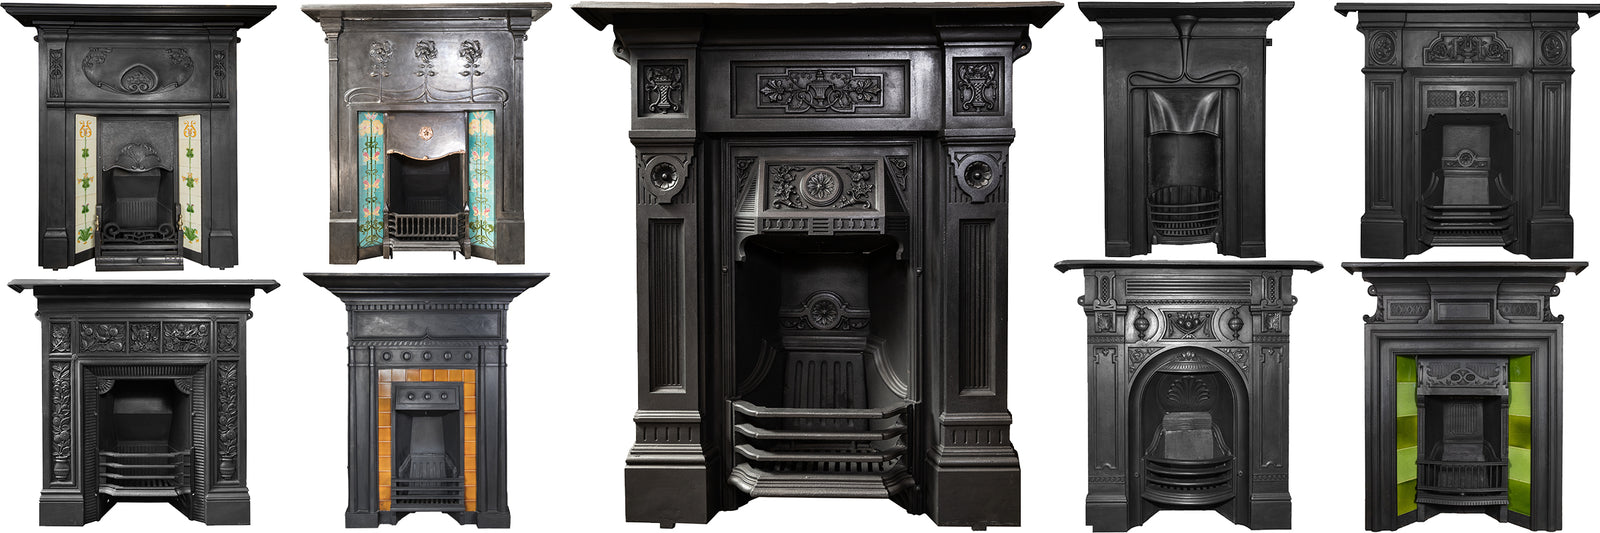 Antique Fireplaces London The Antique Fireplace Experts